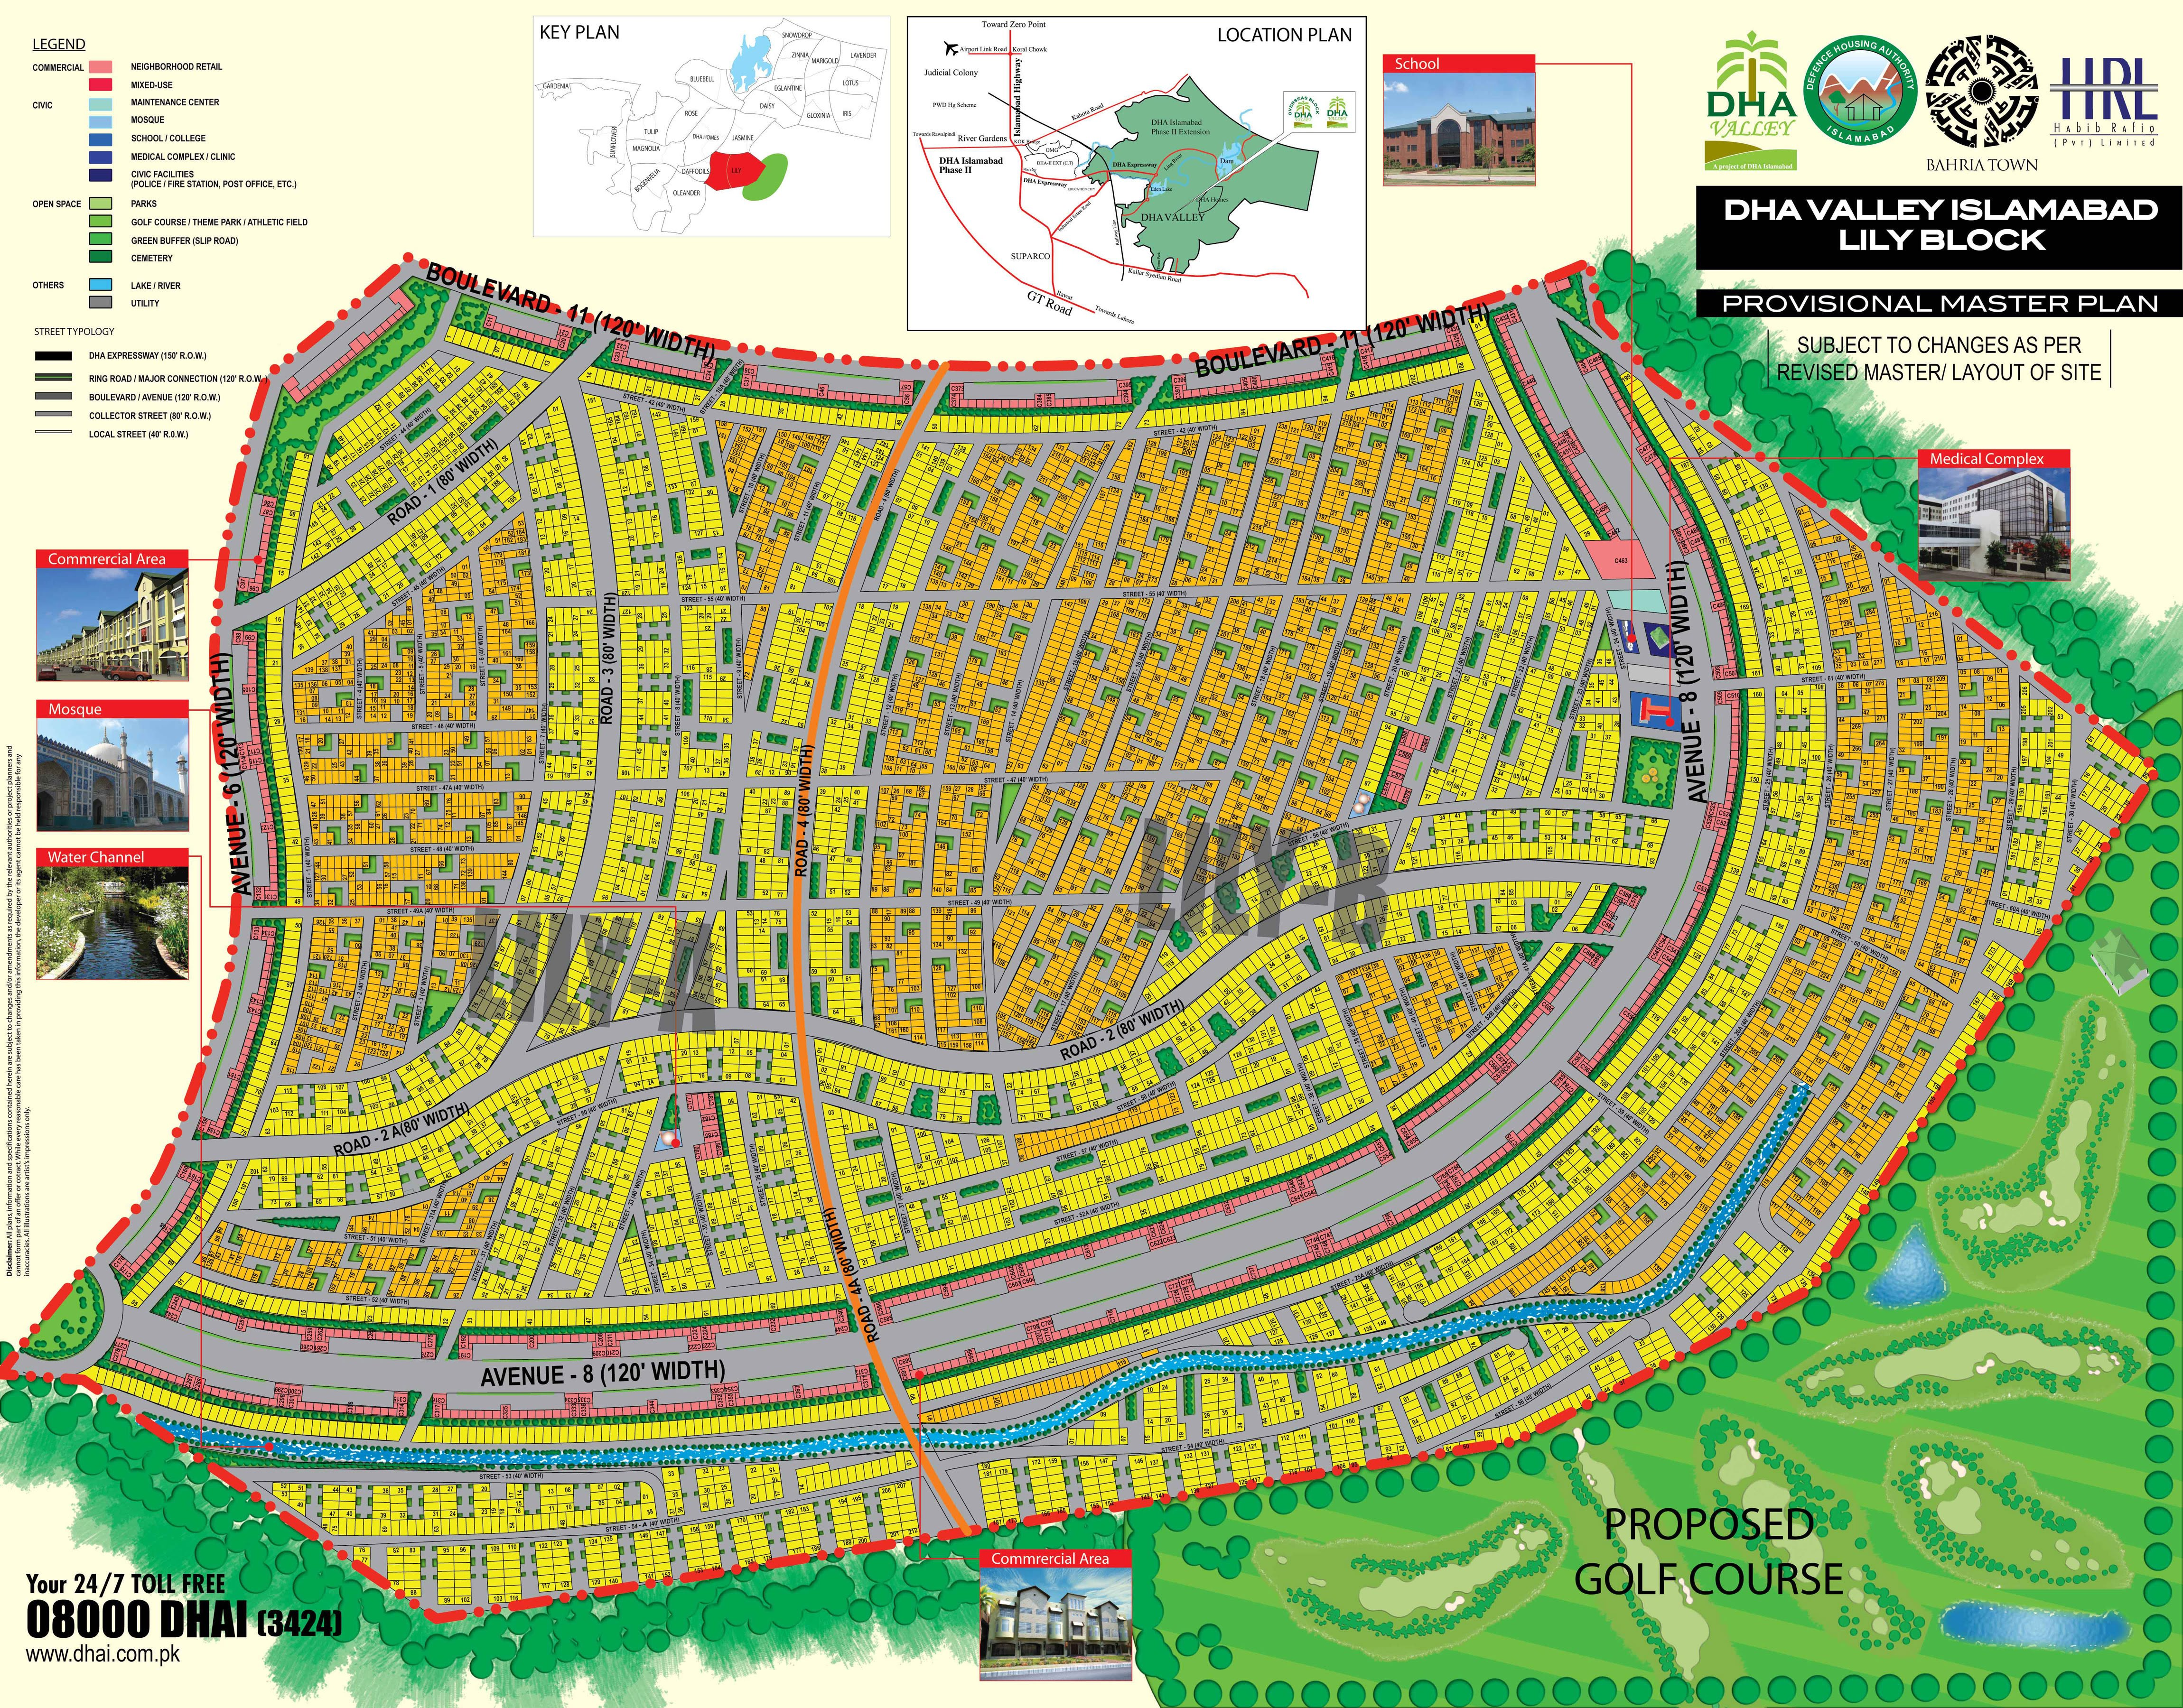 DHA Valley Lily Block - Islamabad Property Maps